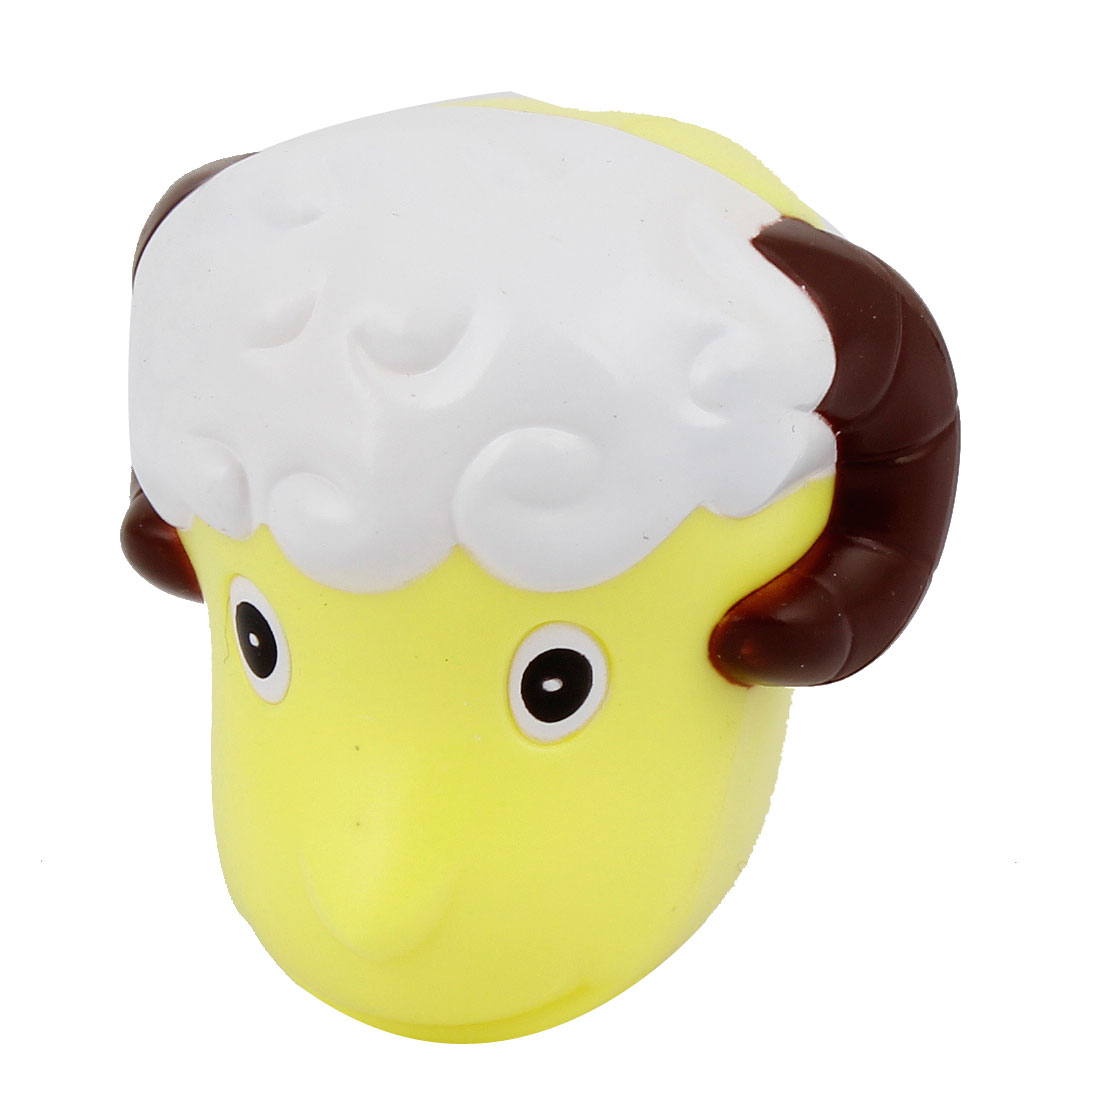 Yellow Plastic Sheep Design Bathroom Suction up Toothbrush Holder Organizer